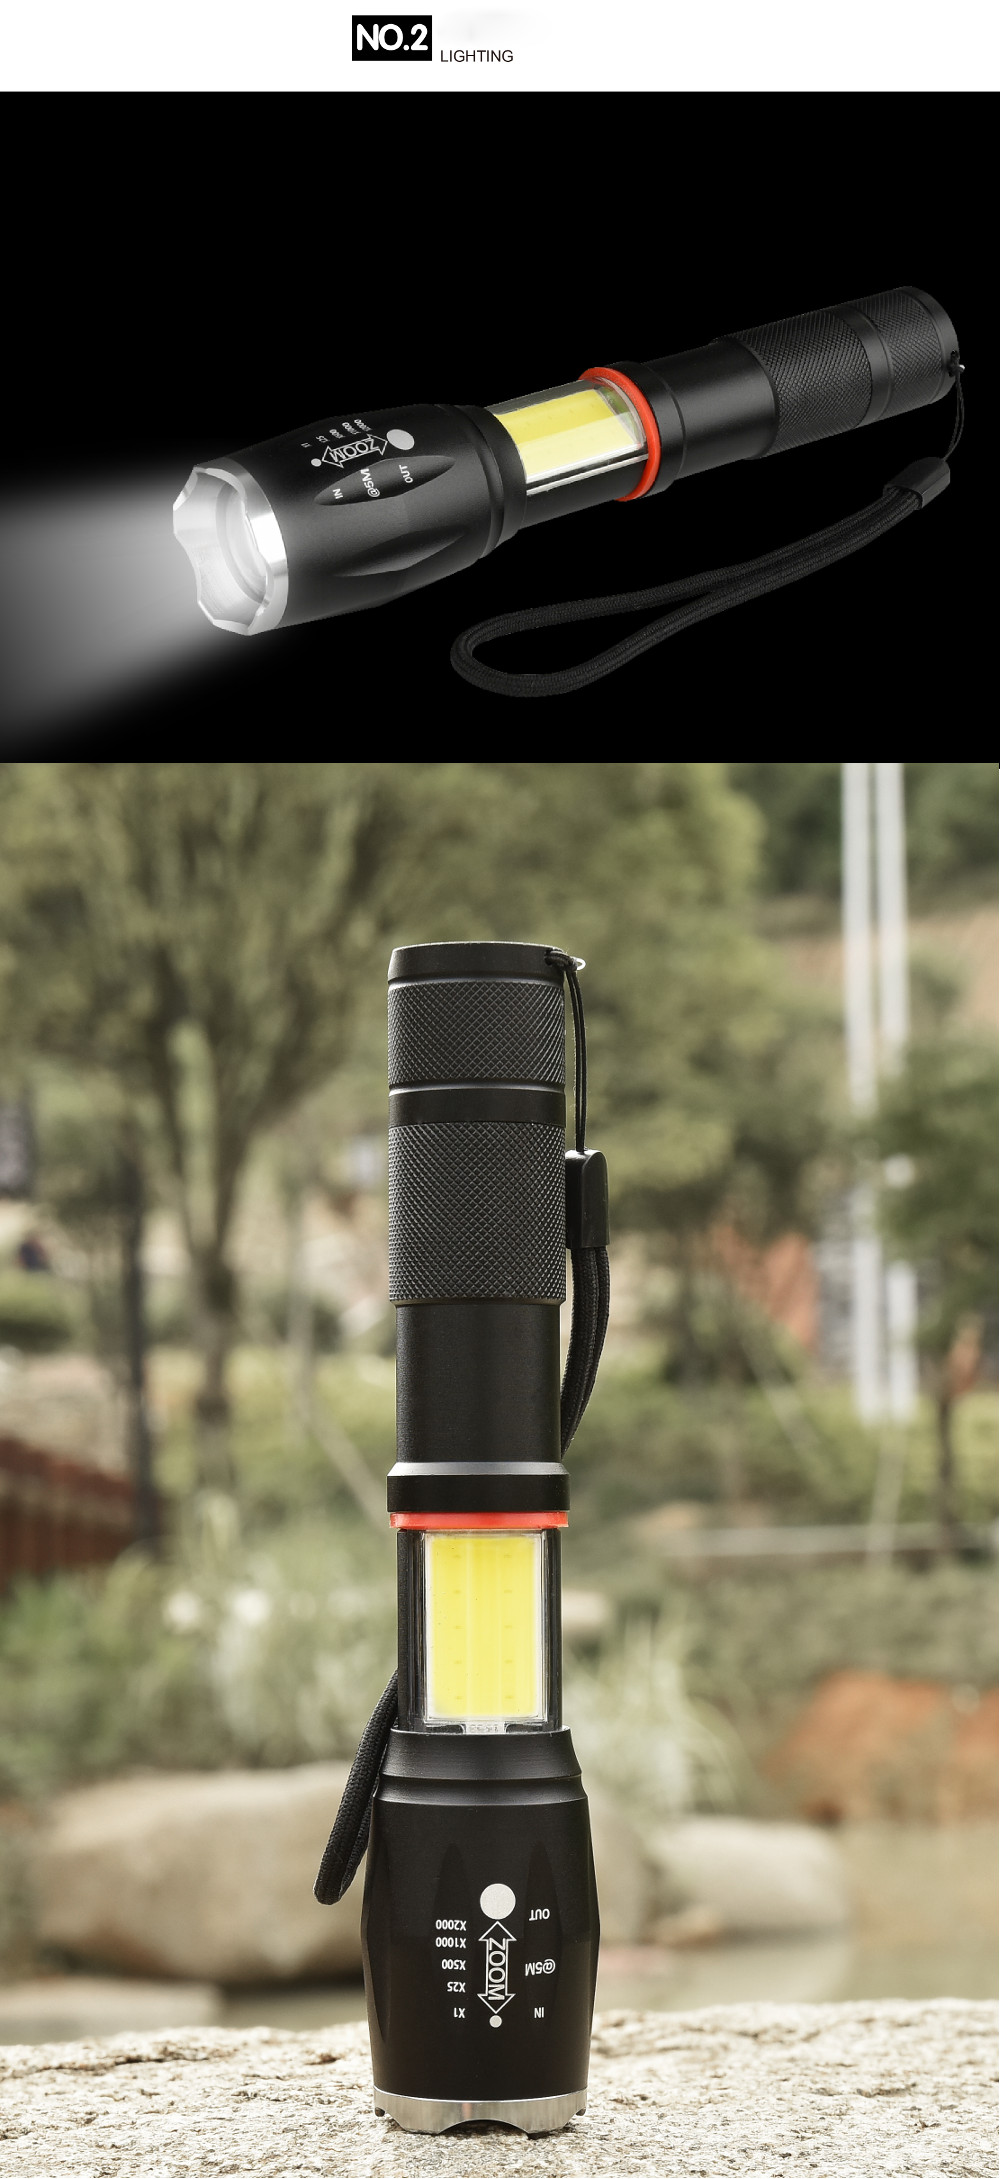 XANES 1005A T6 + COB 1000Lumens 5Modes Front & Side Lights Zoomable Tactical LED Flashlight with Magnetic Tail